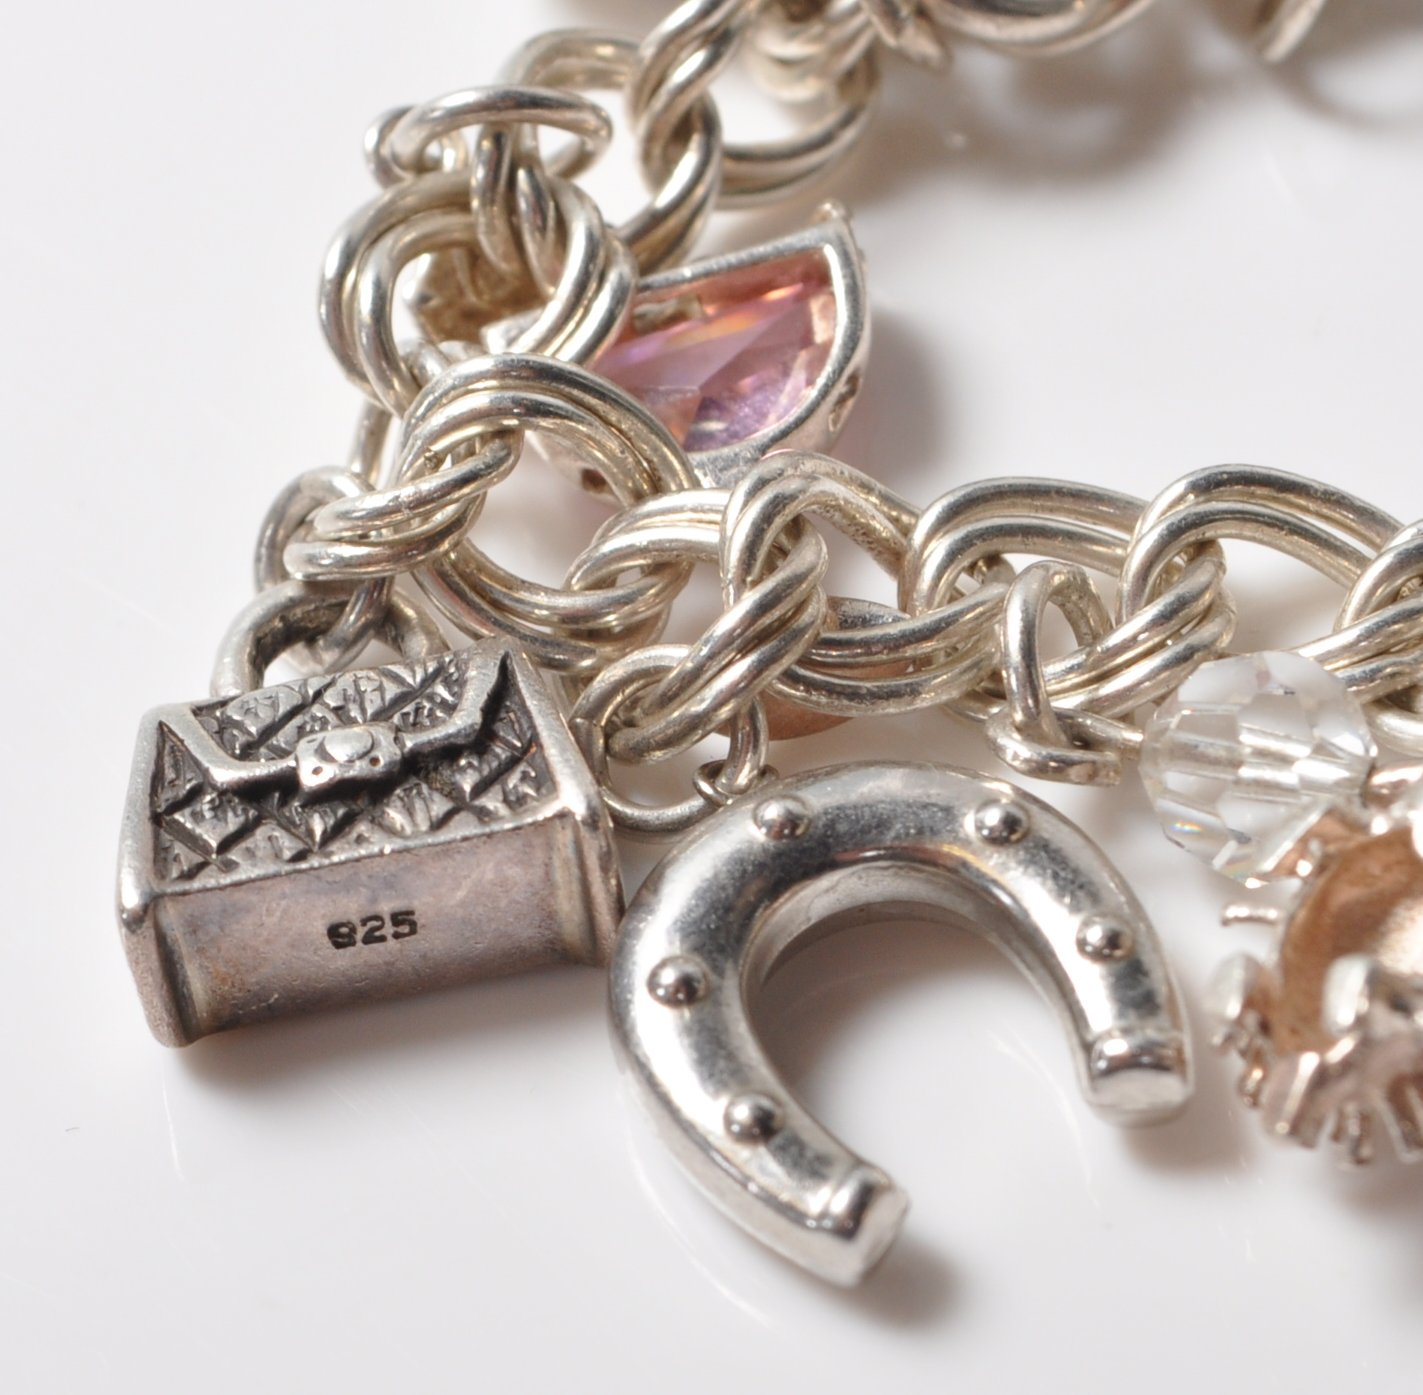 SILVER STAMPED 925 CHARM BRACELET. TOTAL WEIGHT 64 GRAMS. - Image 8 of 8